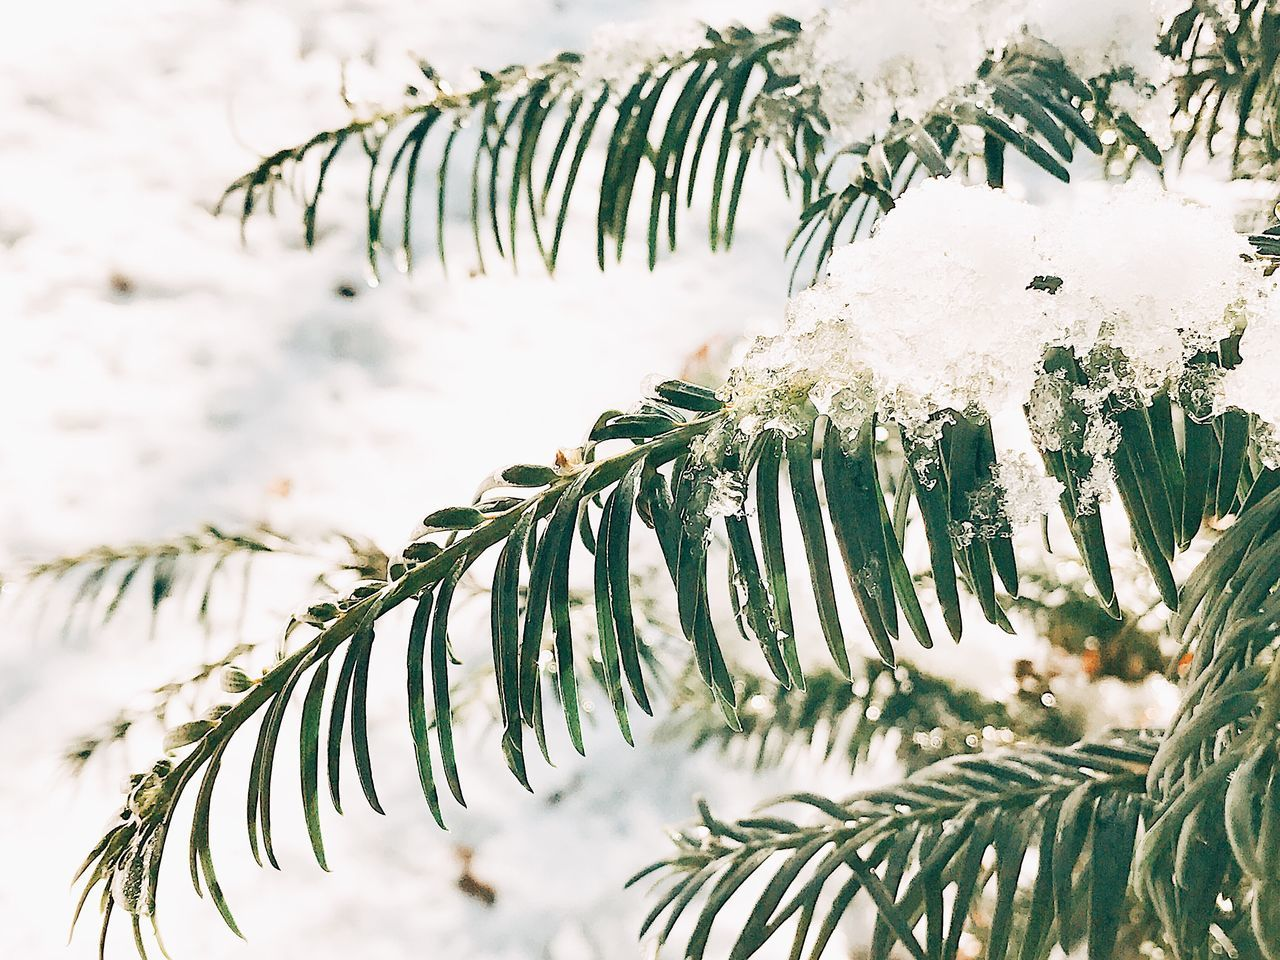 Nature Winter Tree Beauty In Nature Snow Pine Tree Cold Temperature Growth Branch Environment No People Tranquility Needle - Plant Part Outdoors Ice Day Close-up